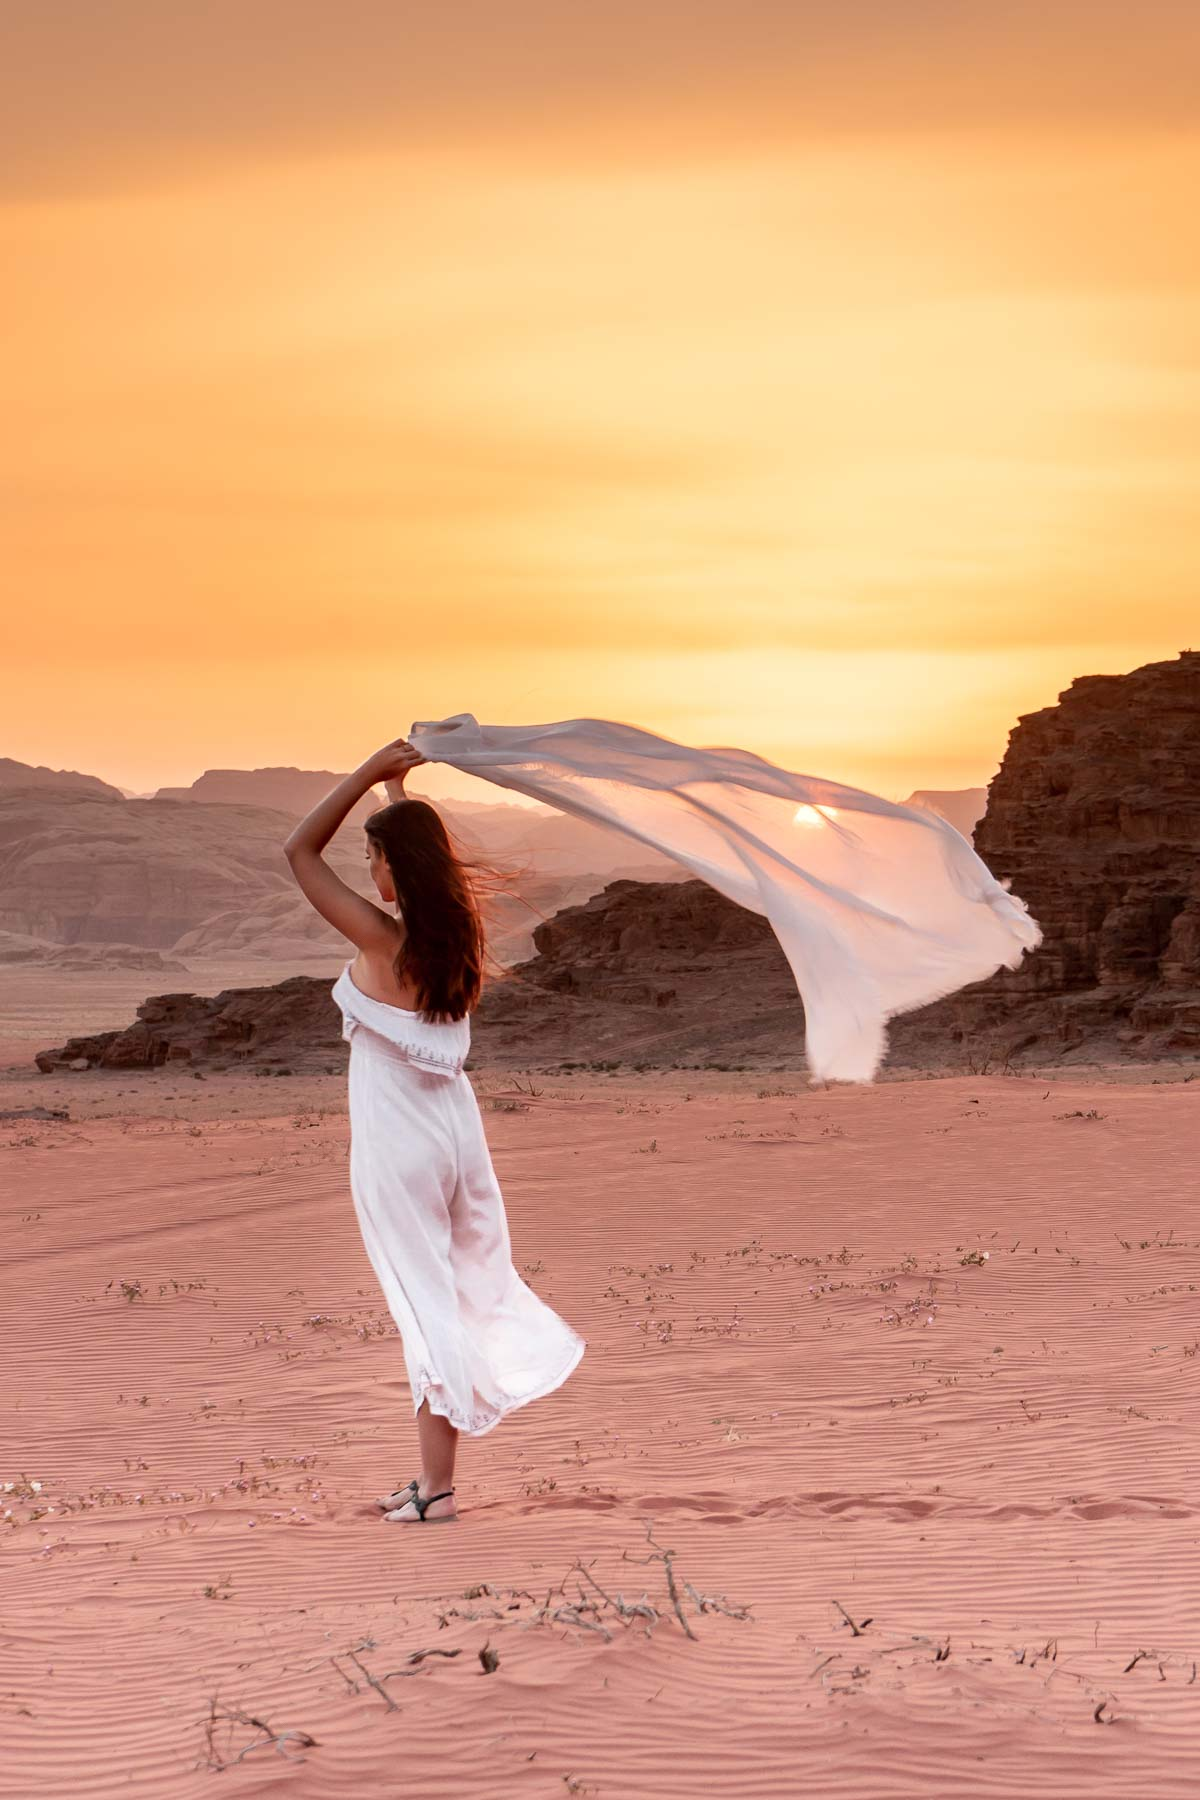 Girl in a white dress watching the sunset in the Wadi Rum, Jordan